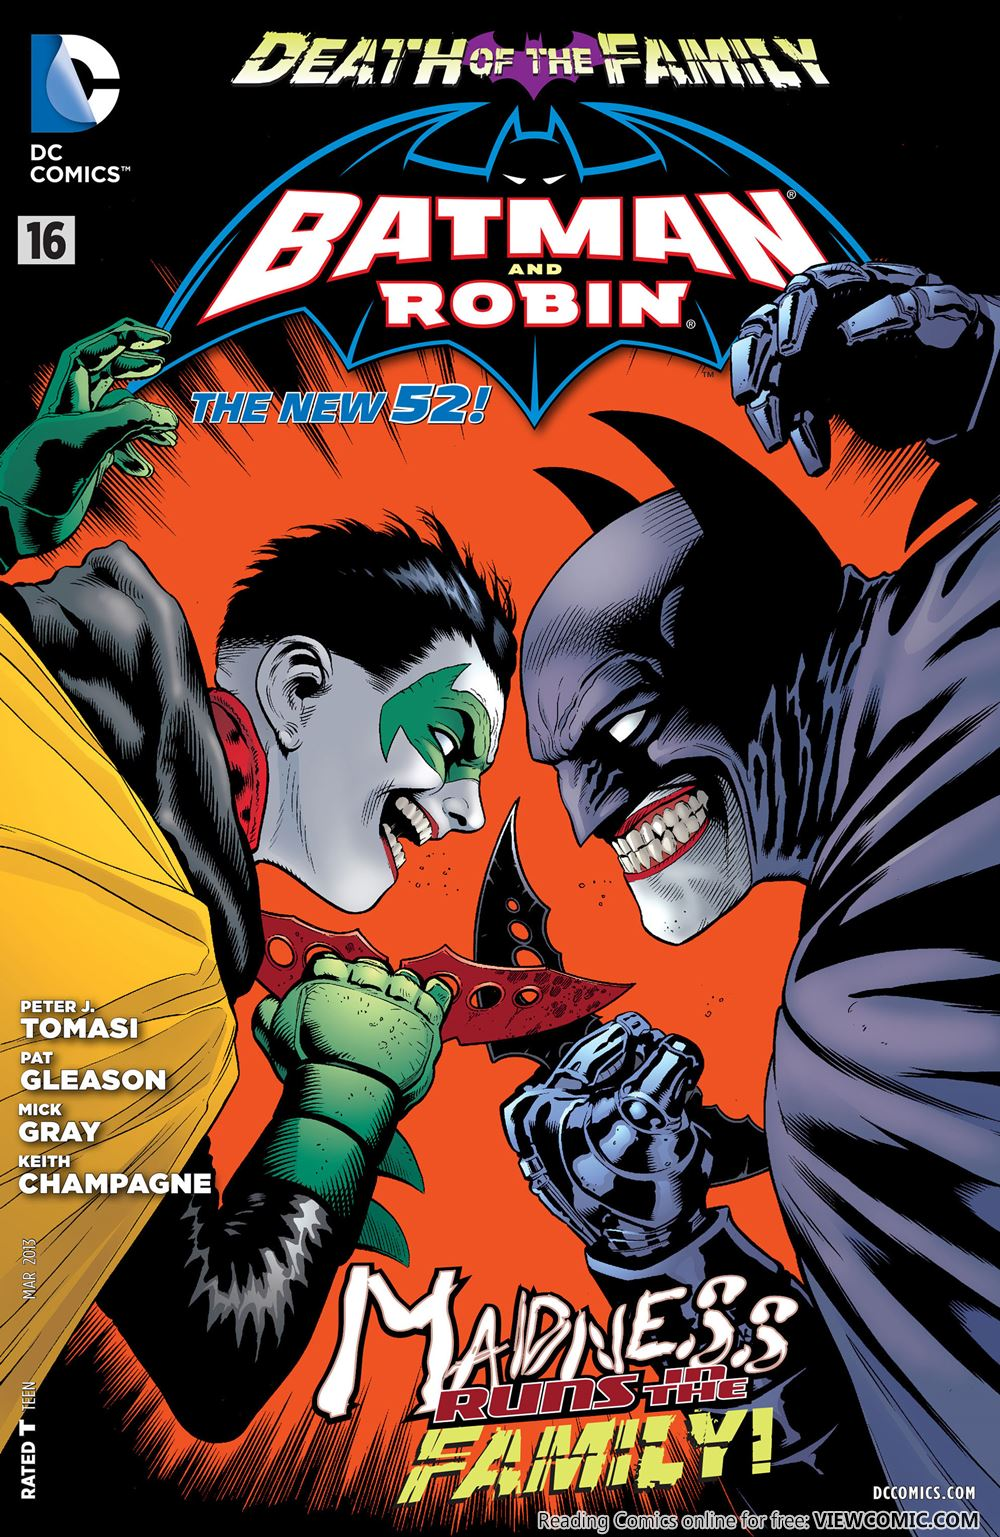 Death of the family 16 batman and robin 016 reading comics death of the family 16 batman and robin 016 fandeluxe Choice Image